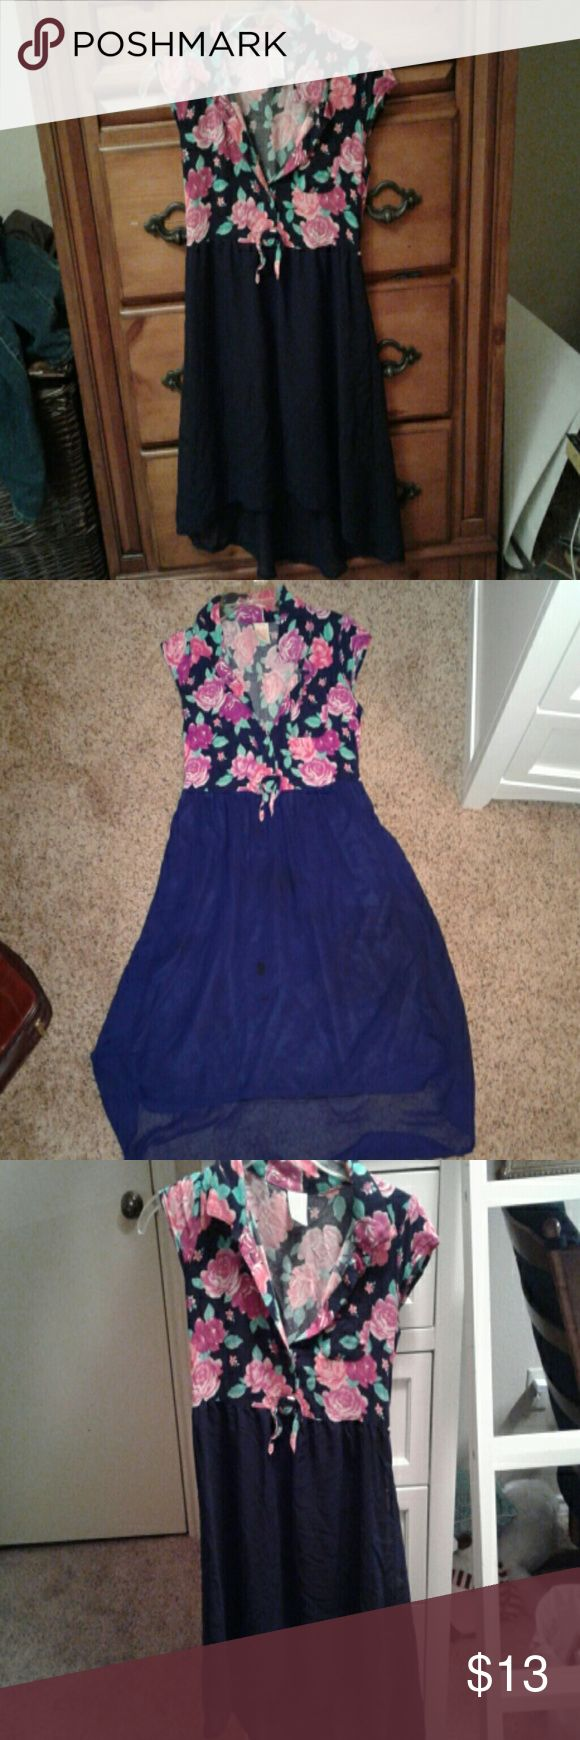 High-Low dress This is a large, high-low kids dress.  Hardly worn. The bottom is navy blue.  The top is navy with roses.  Very fun and  dress. Faded Glory Dresses Casual